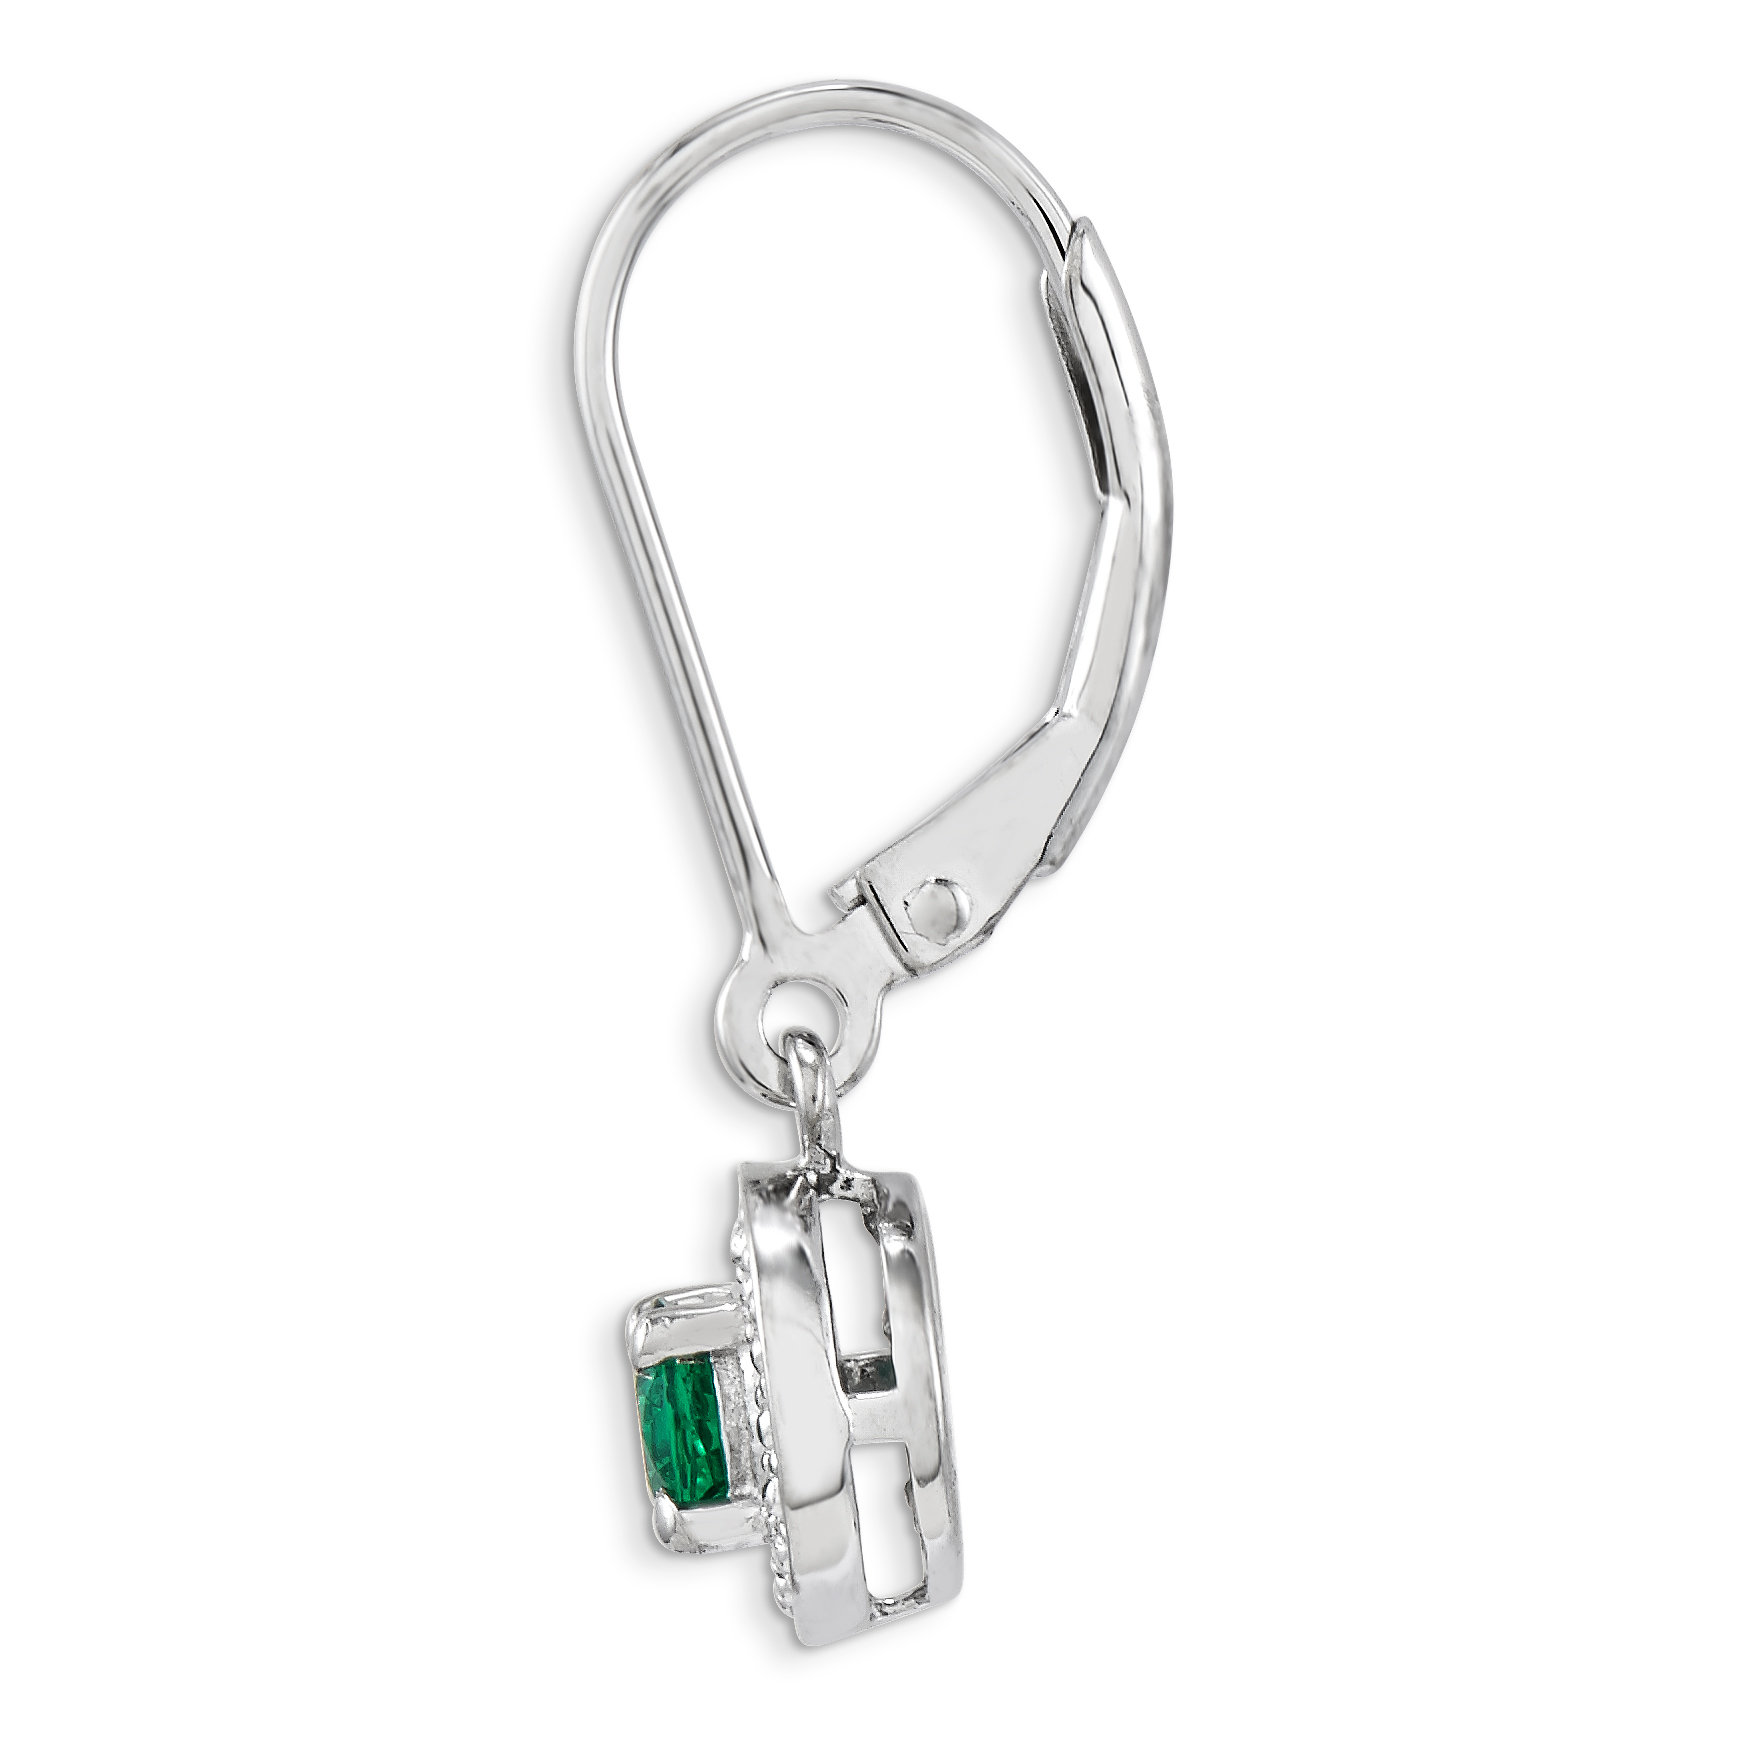 925 Sterling Silver Diamond Created Green Emerald Leverback Earrings Lever Back Set Drop Dangle Birthstone May Fine Jewelry Gifts For Women For Her - image 1 of 8